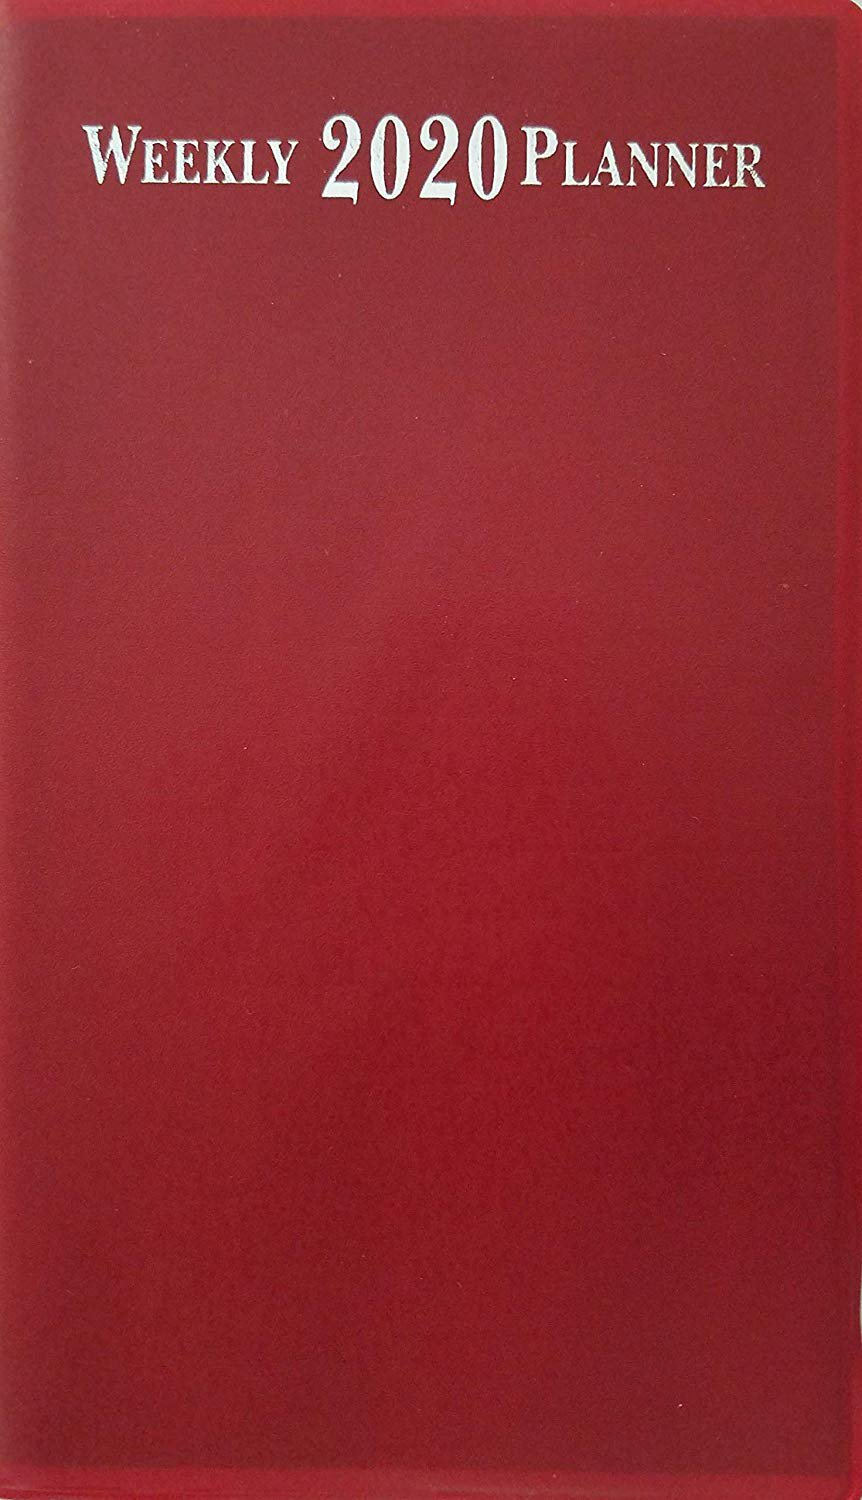 """2020 Weekly Pocket Appointment Planner Day-Timer 6.5"""" x 3.75"""", Select: Color (Red)"""